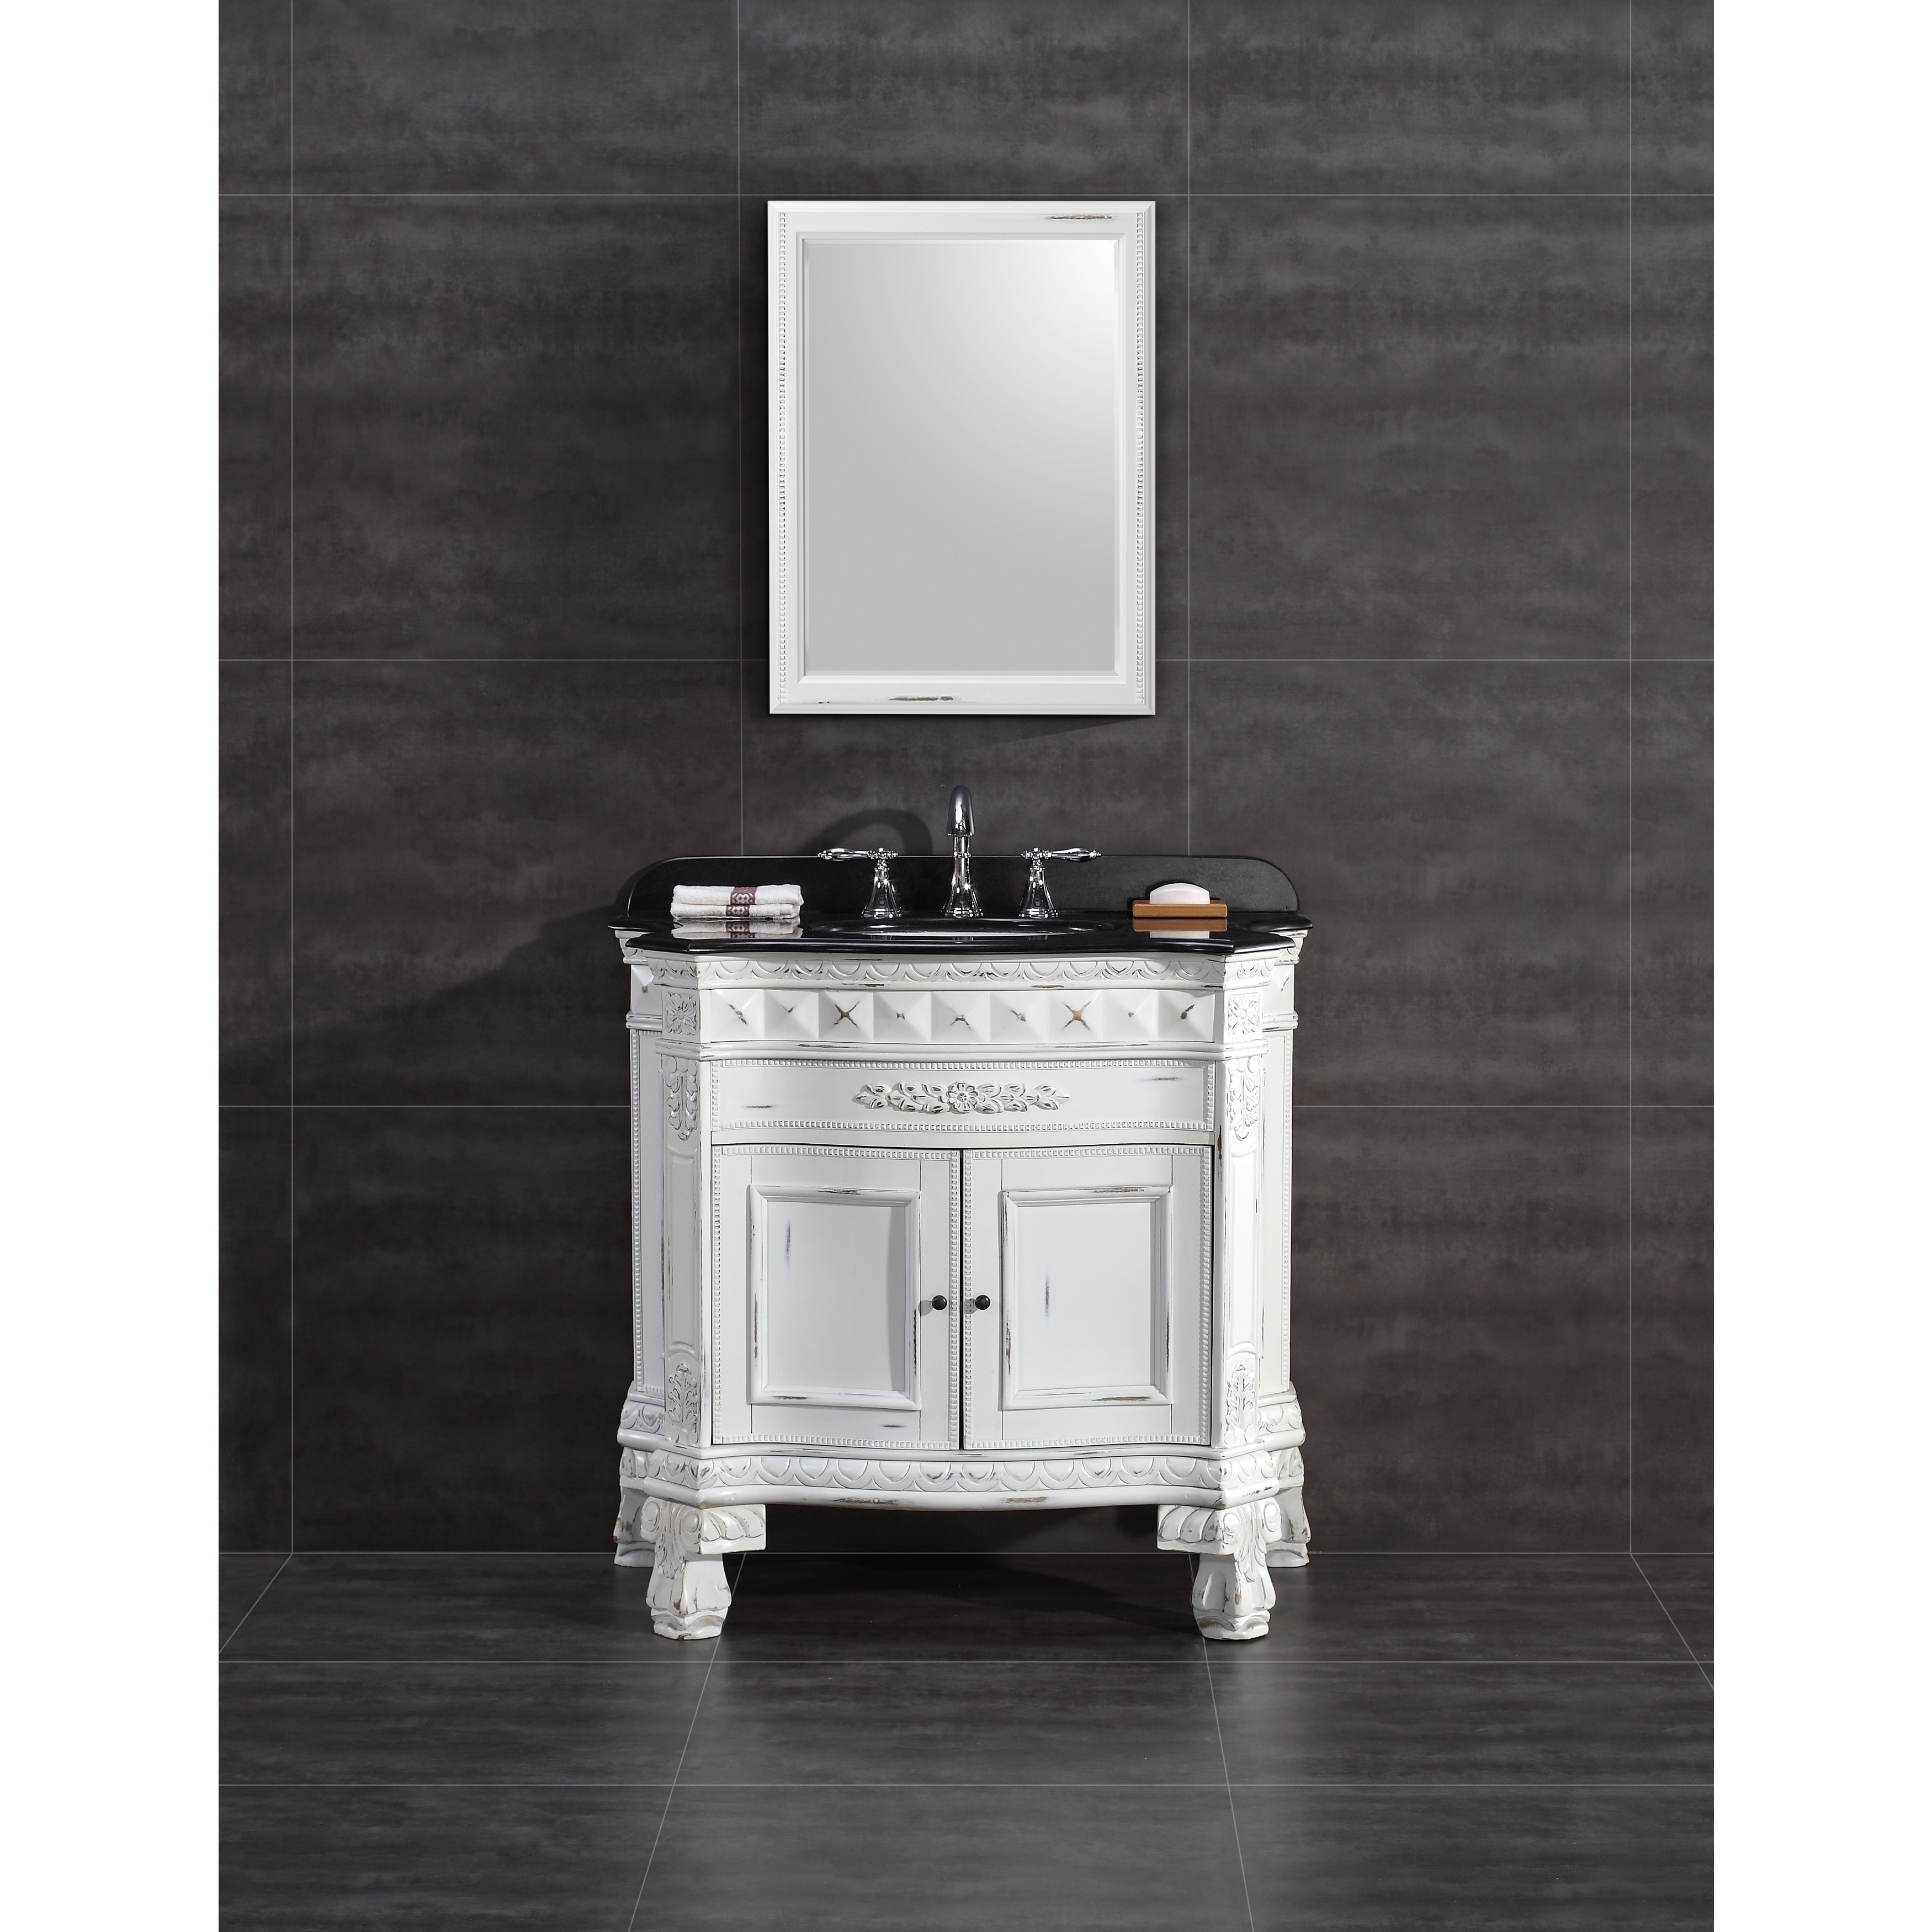 Genial Shop OVE Decors York 36 Inch Single Sink Bathroom Vanity With Granite Top    Free Shipping Today   Overstock.com   10490061